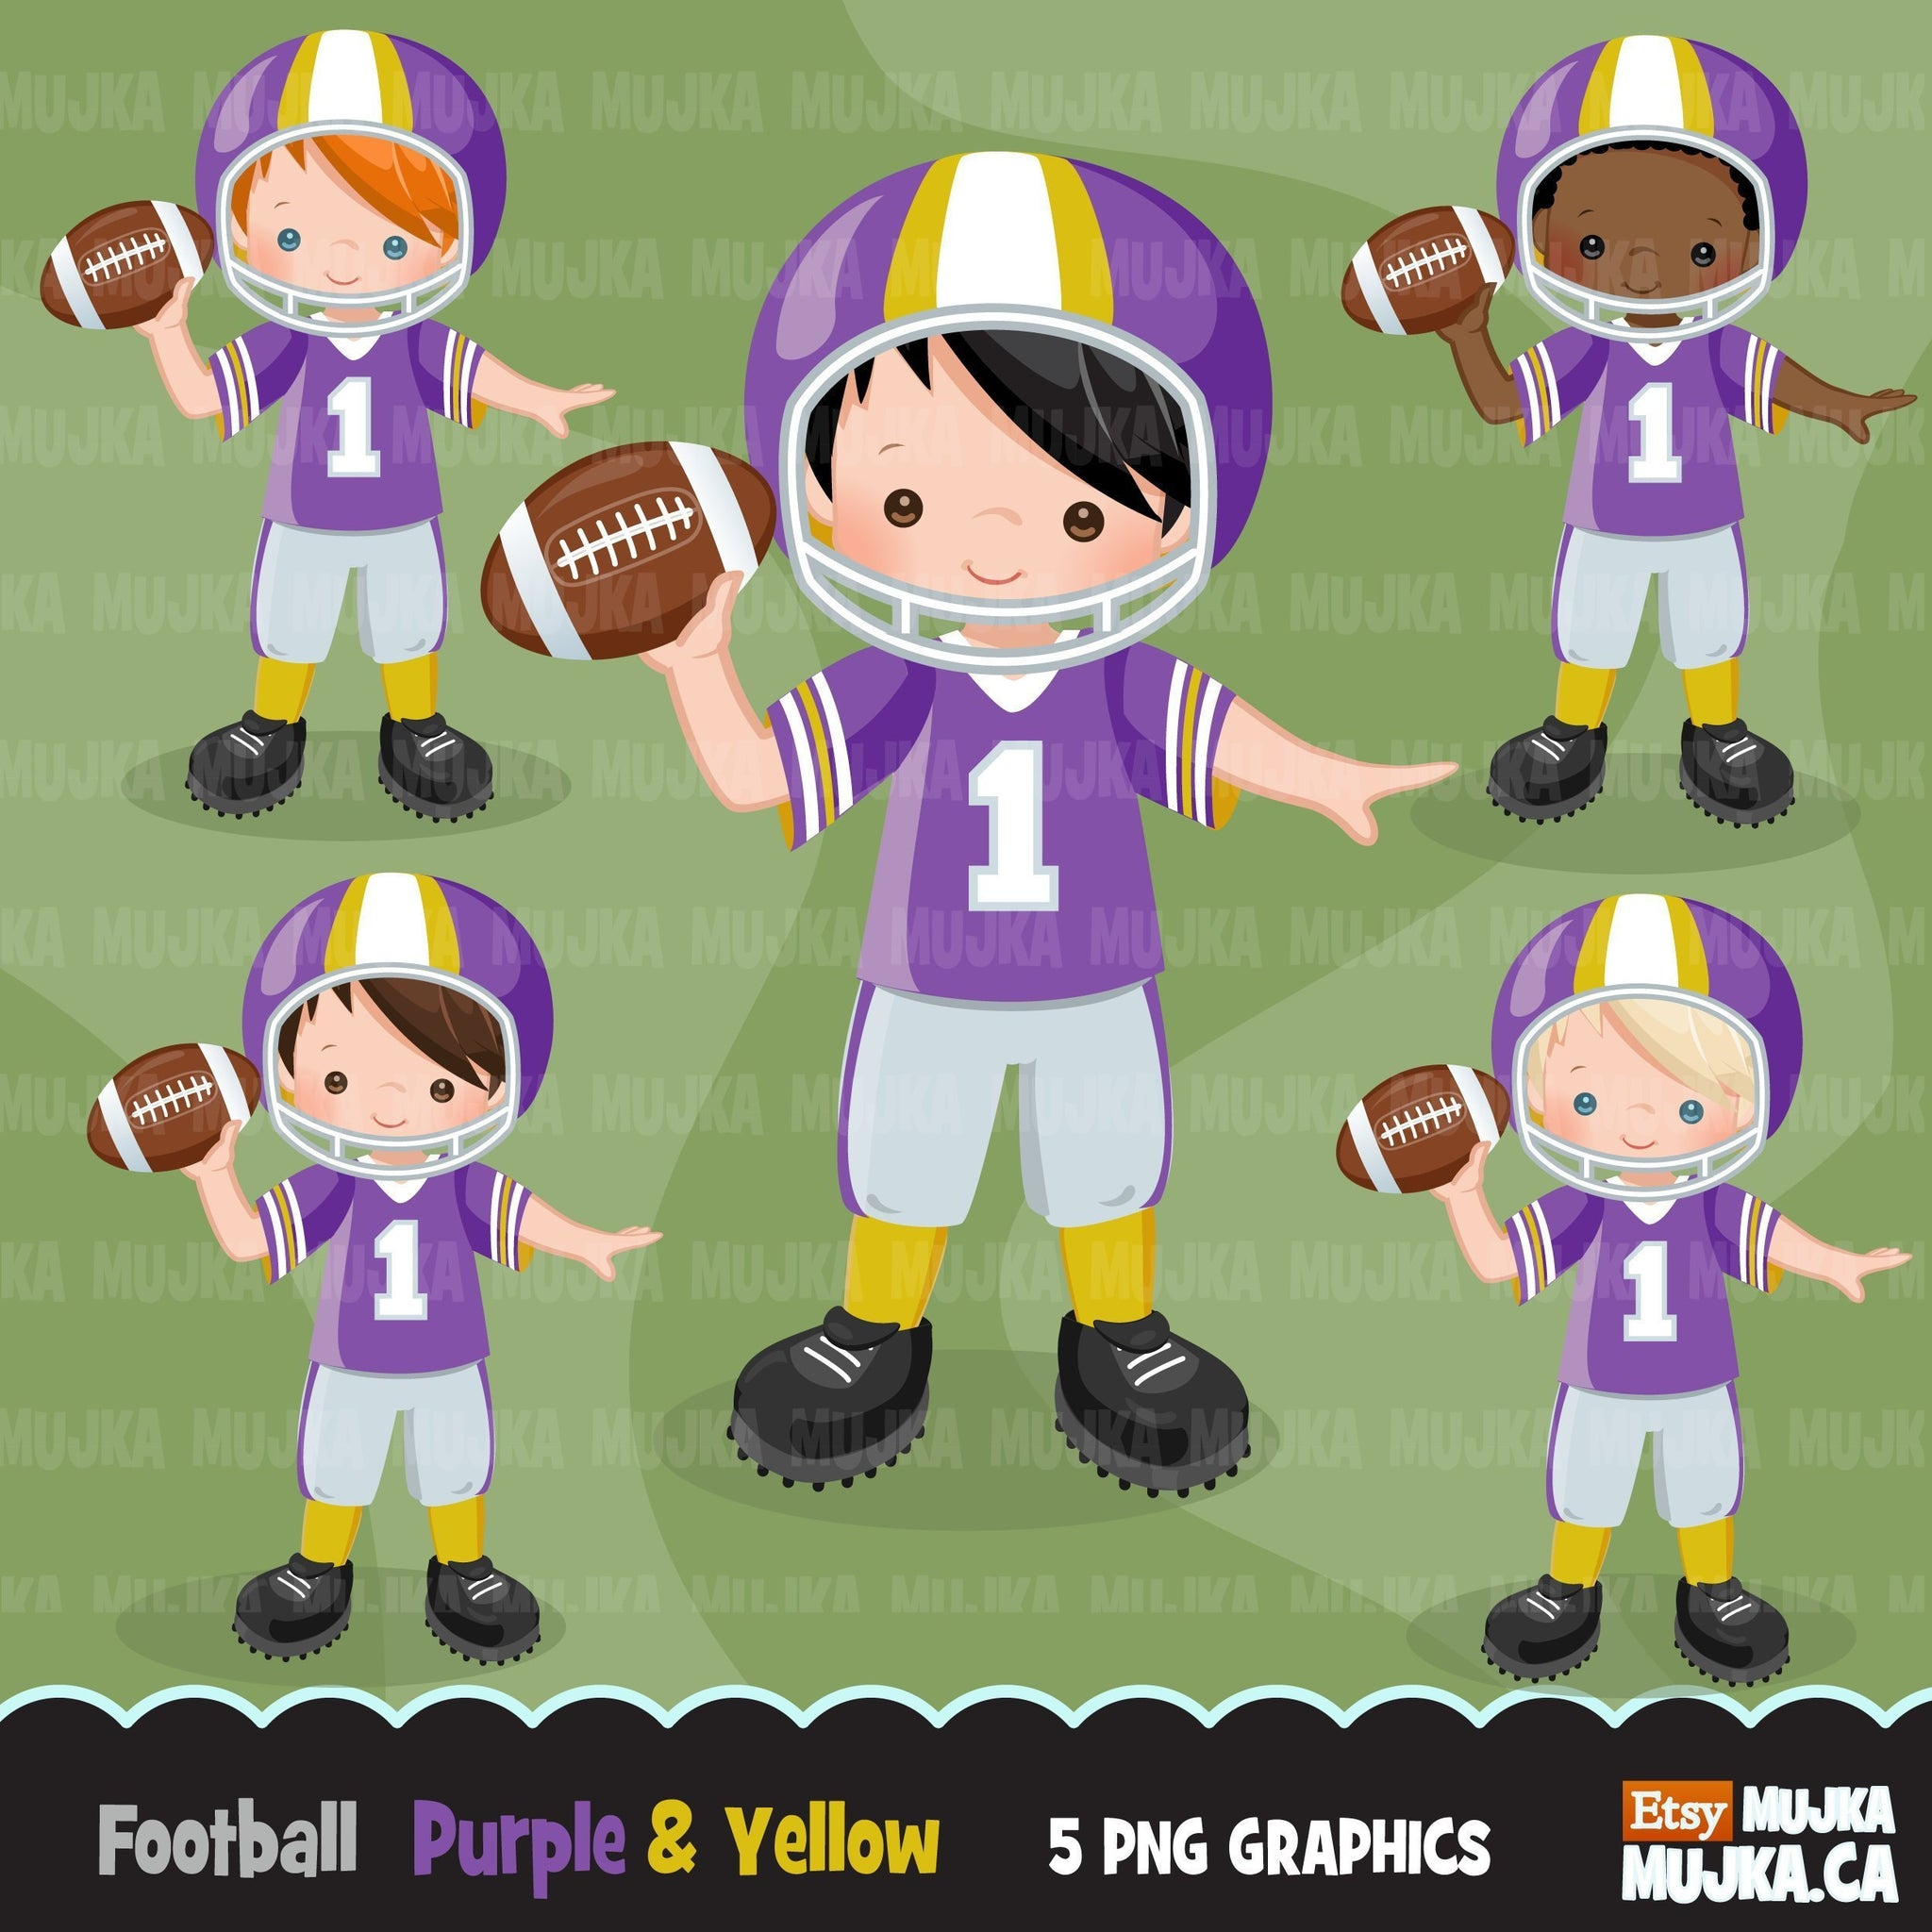 Football clipart, boy in purple and yellow jersey throwing